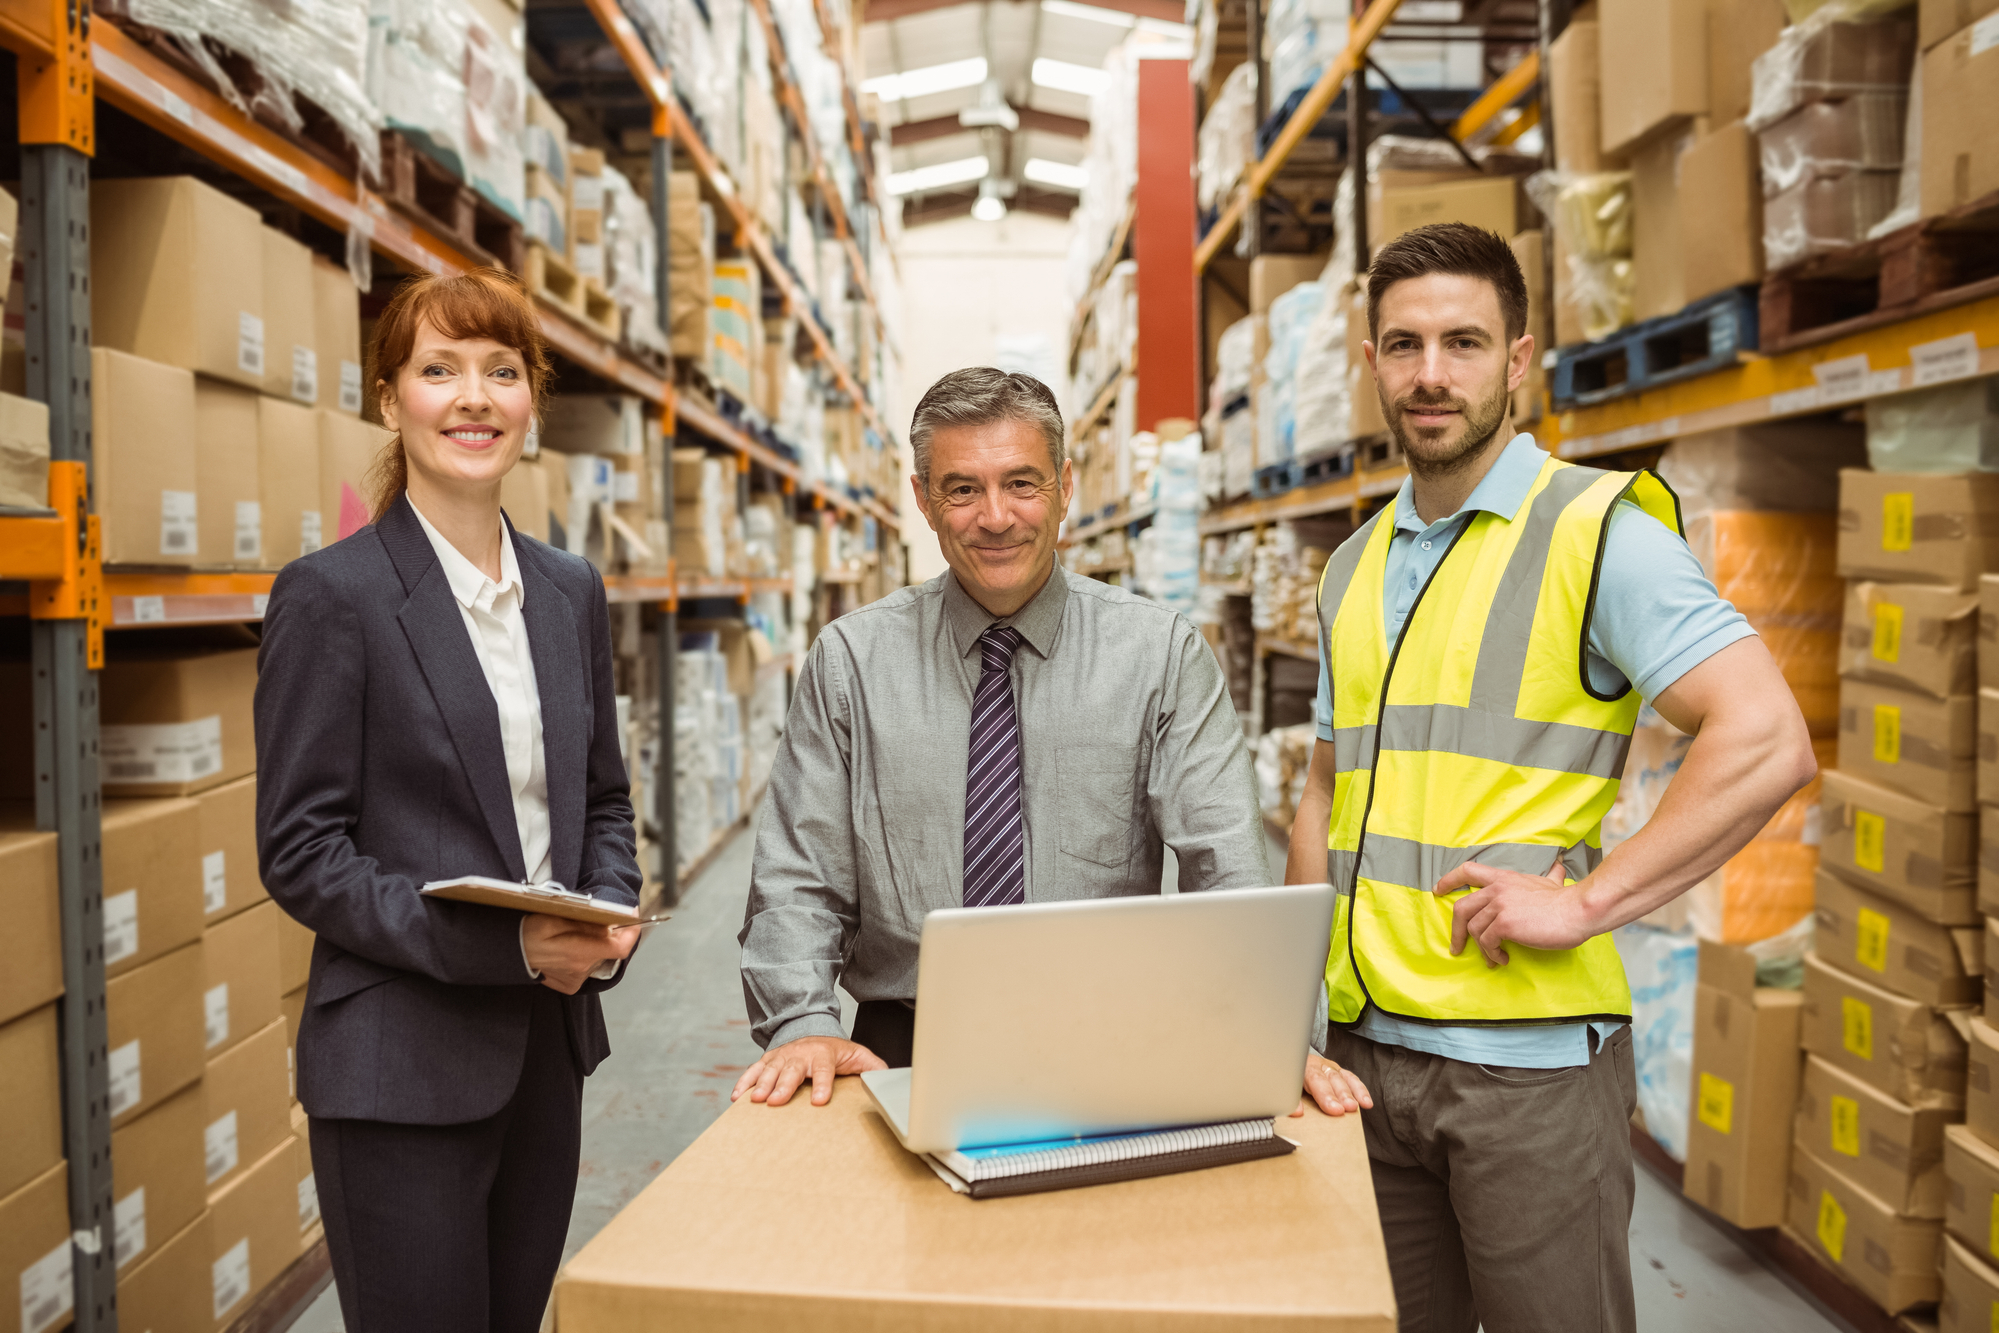 Three logistics professionals in a warehouse